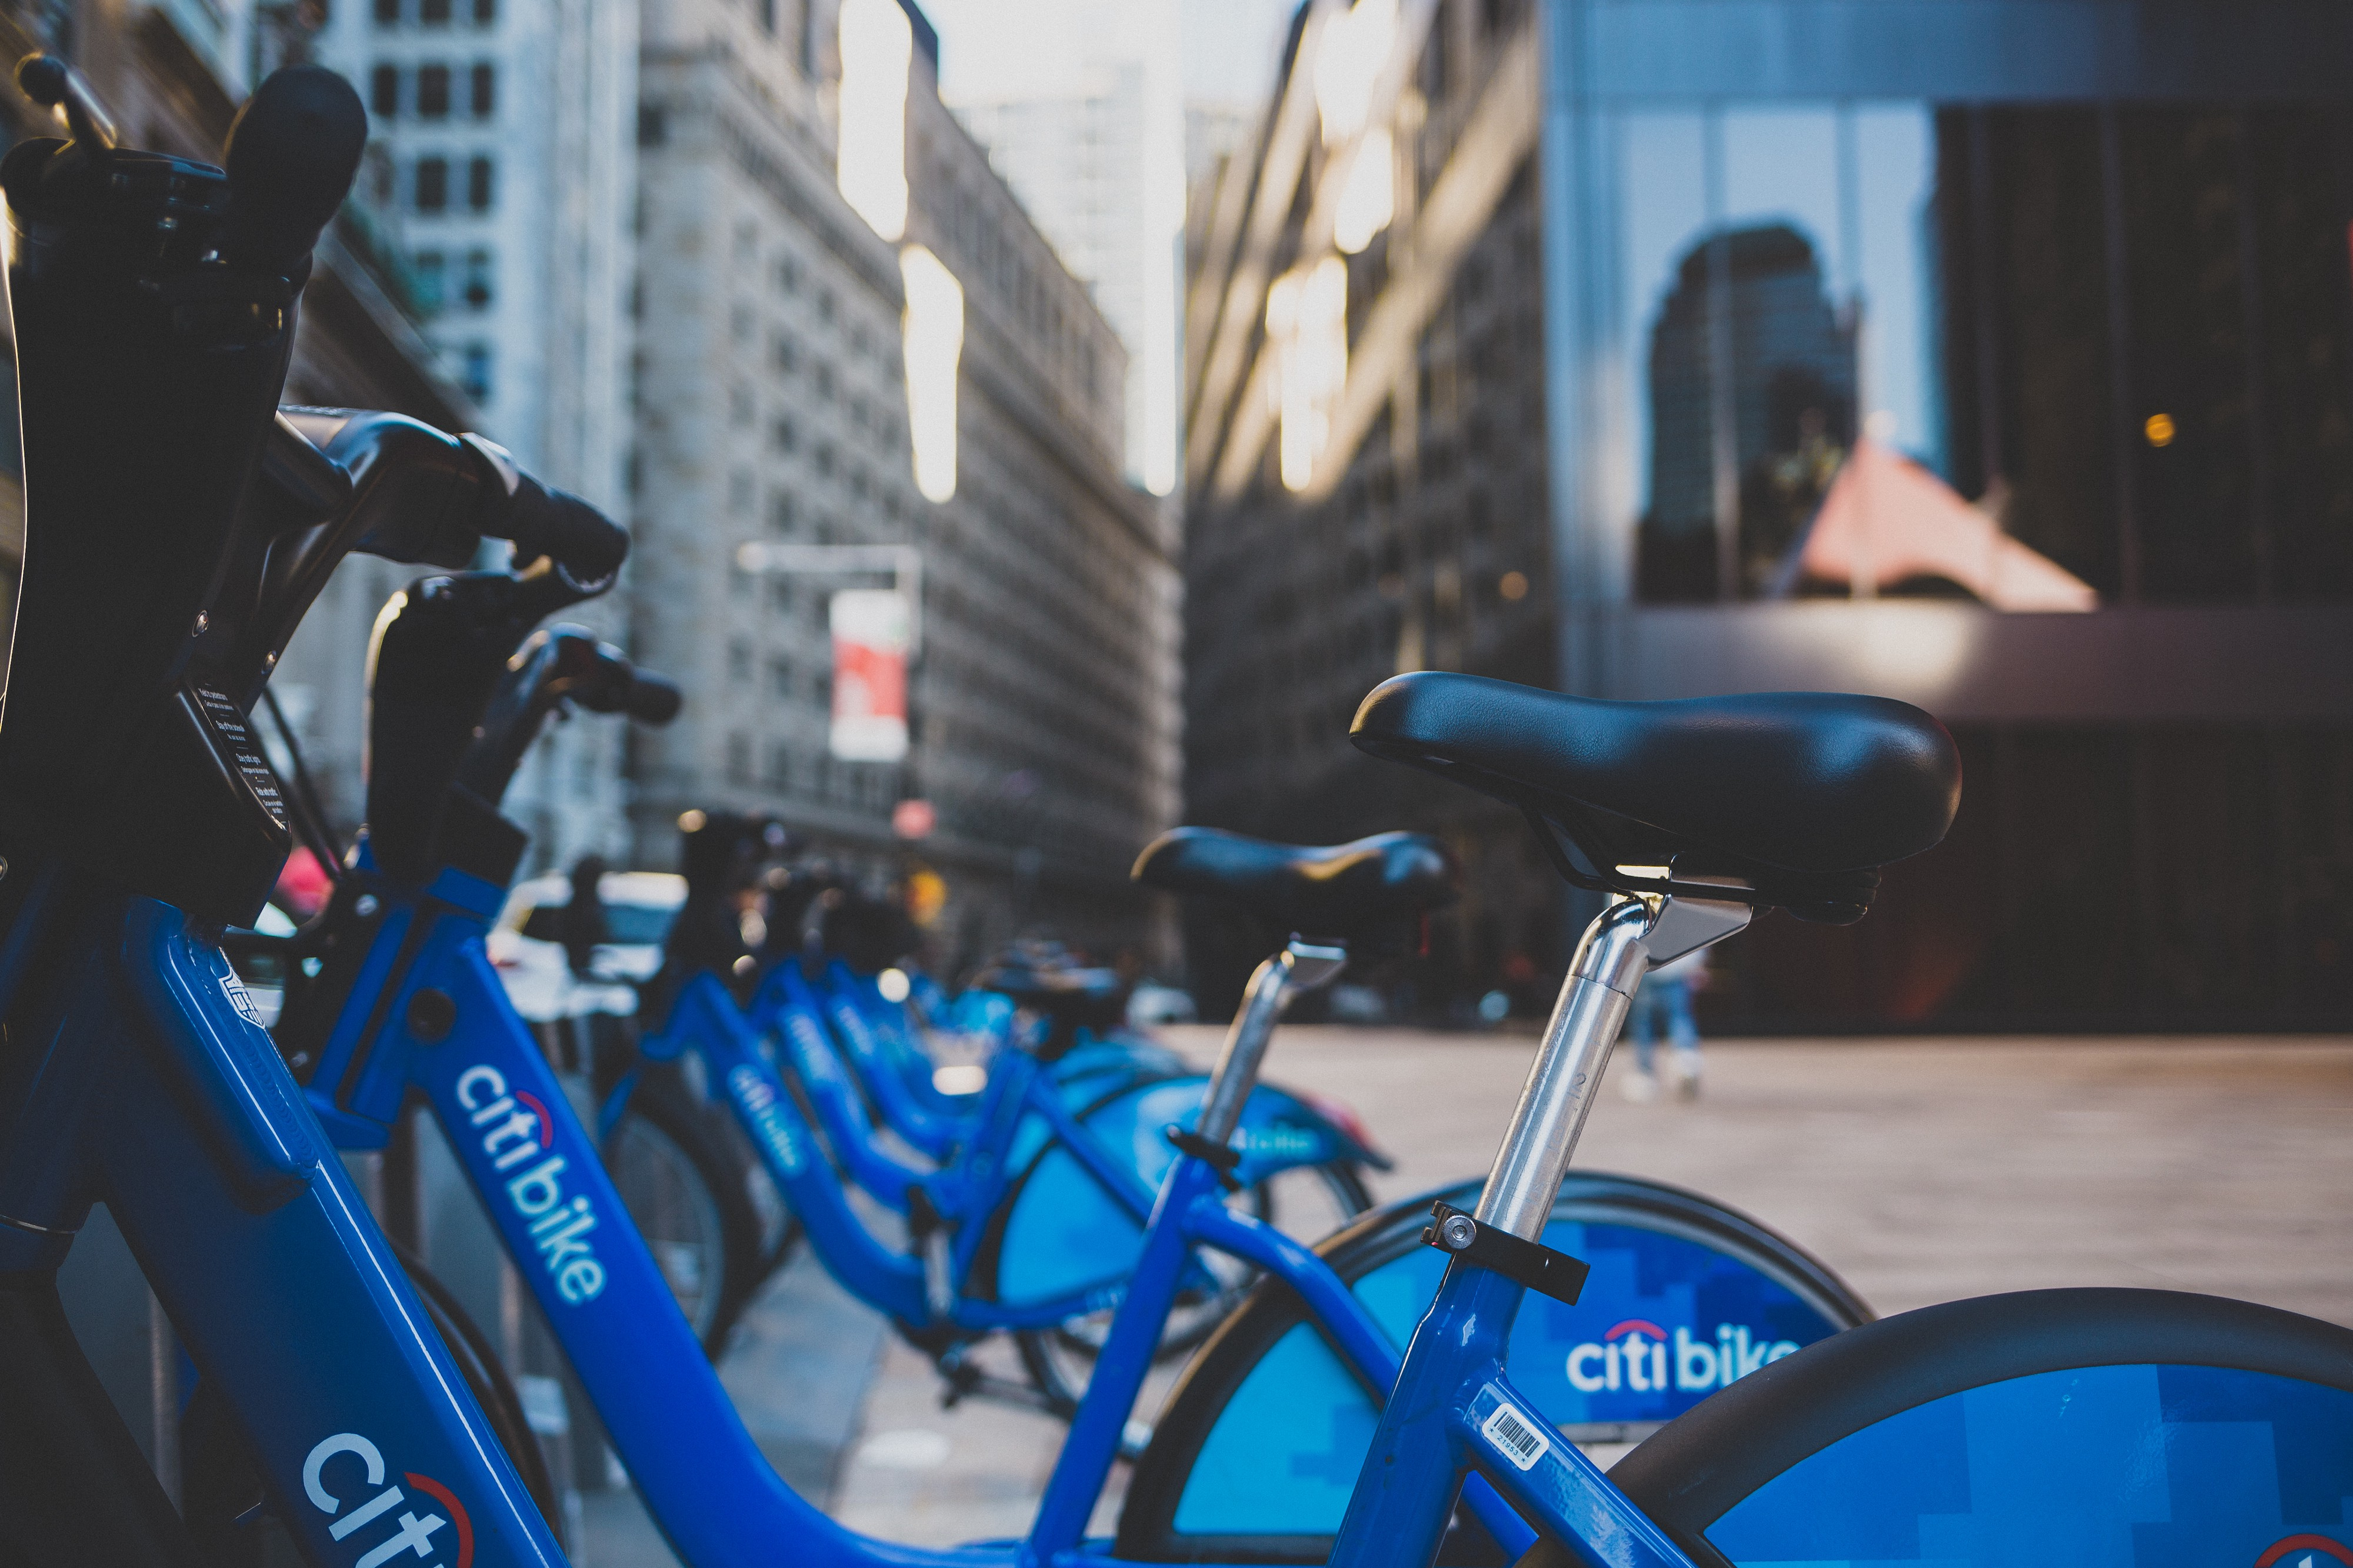 Tracking NYC Citi Bike real time utilization using Kafka Streams on